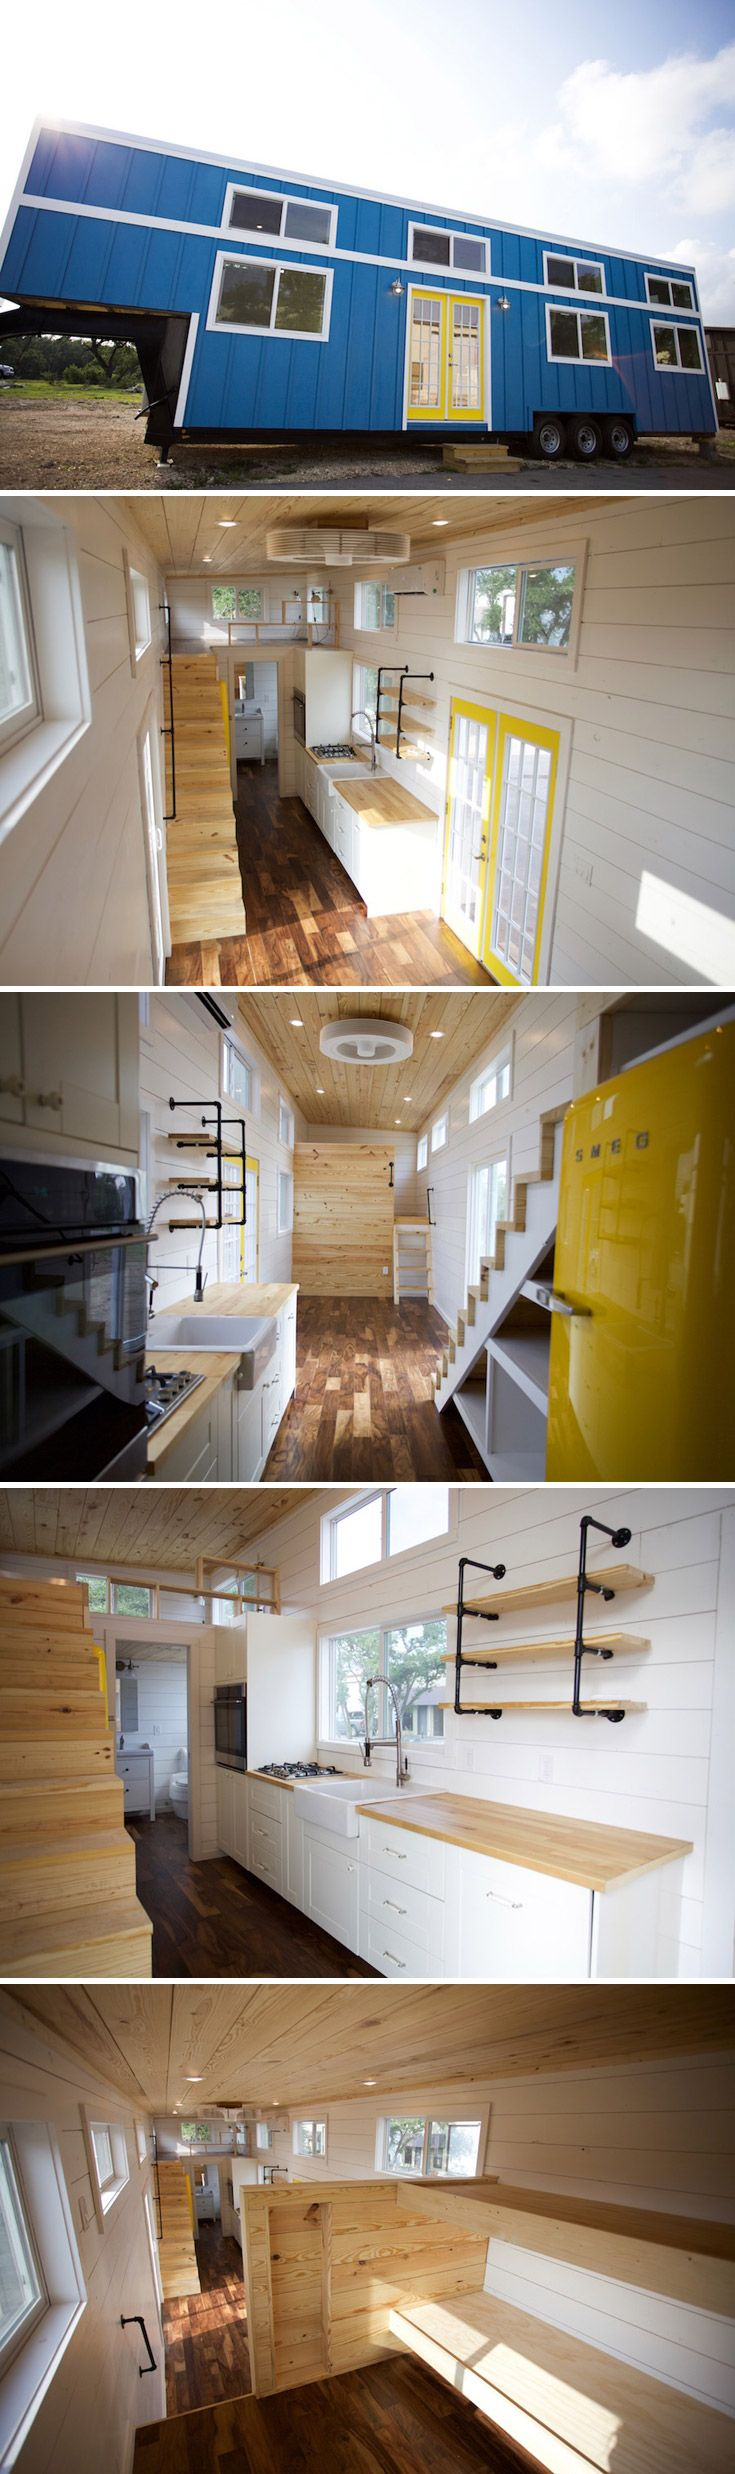 Best Tiny House For Big Family Ideas On Pinterest Tiny House - Couple takes tiny house big adventure